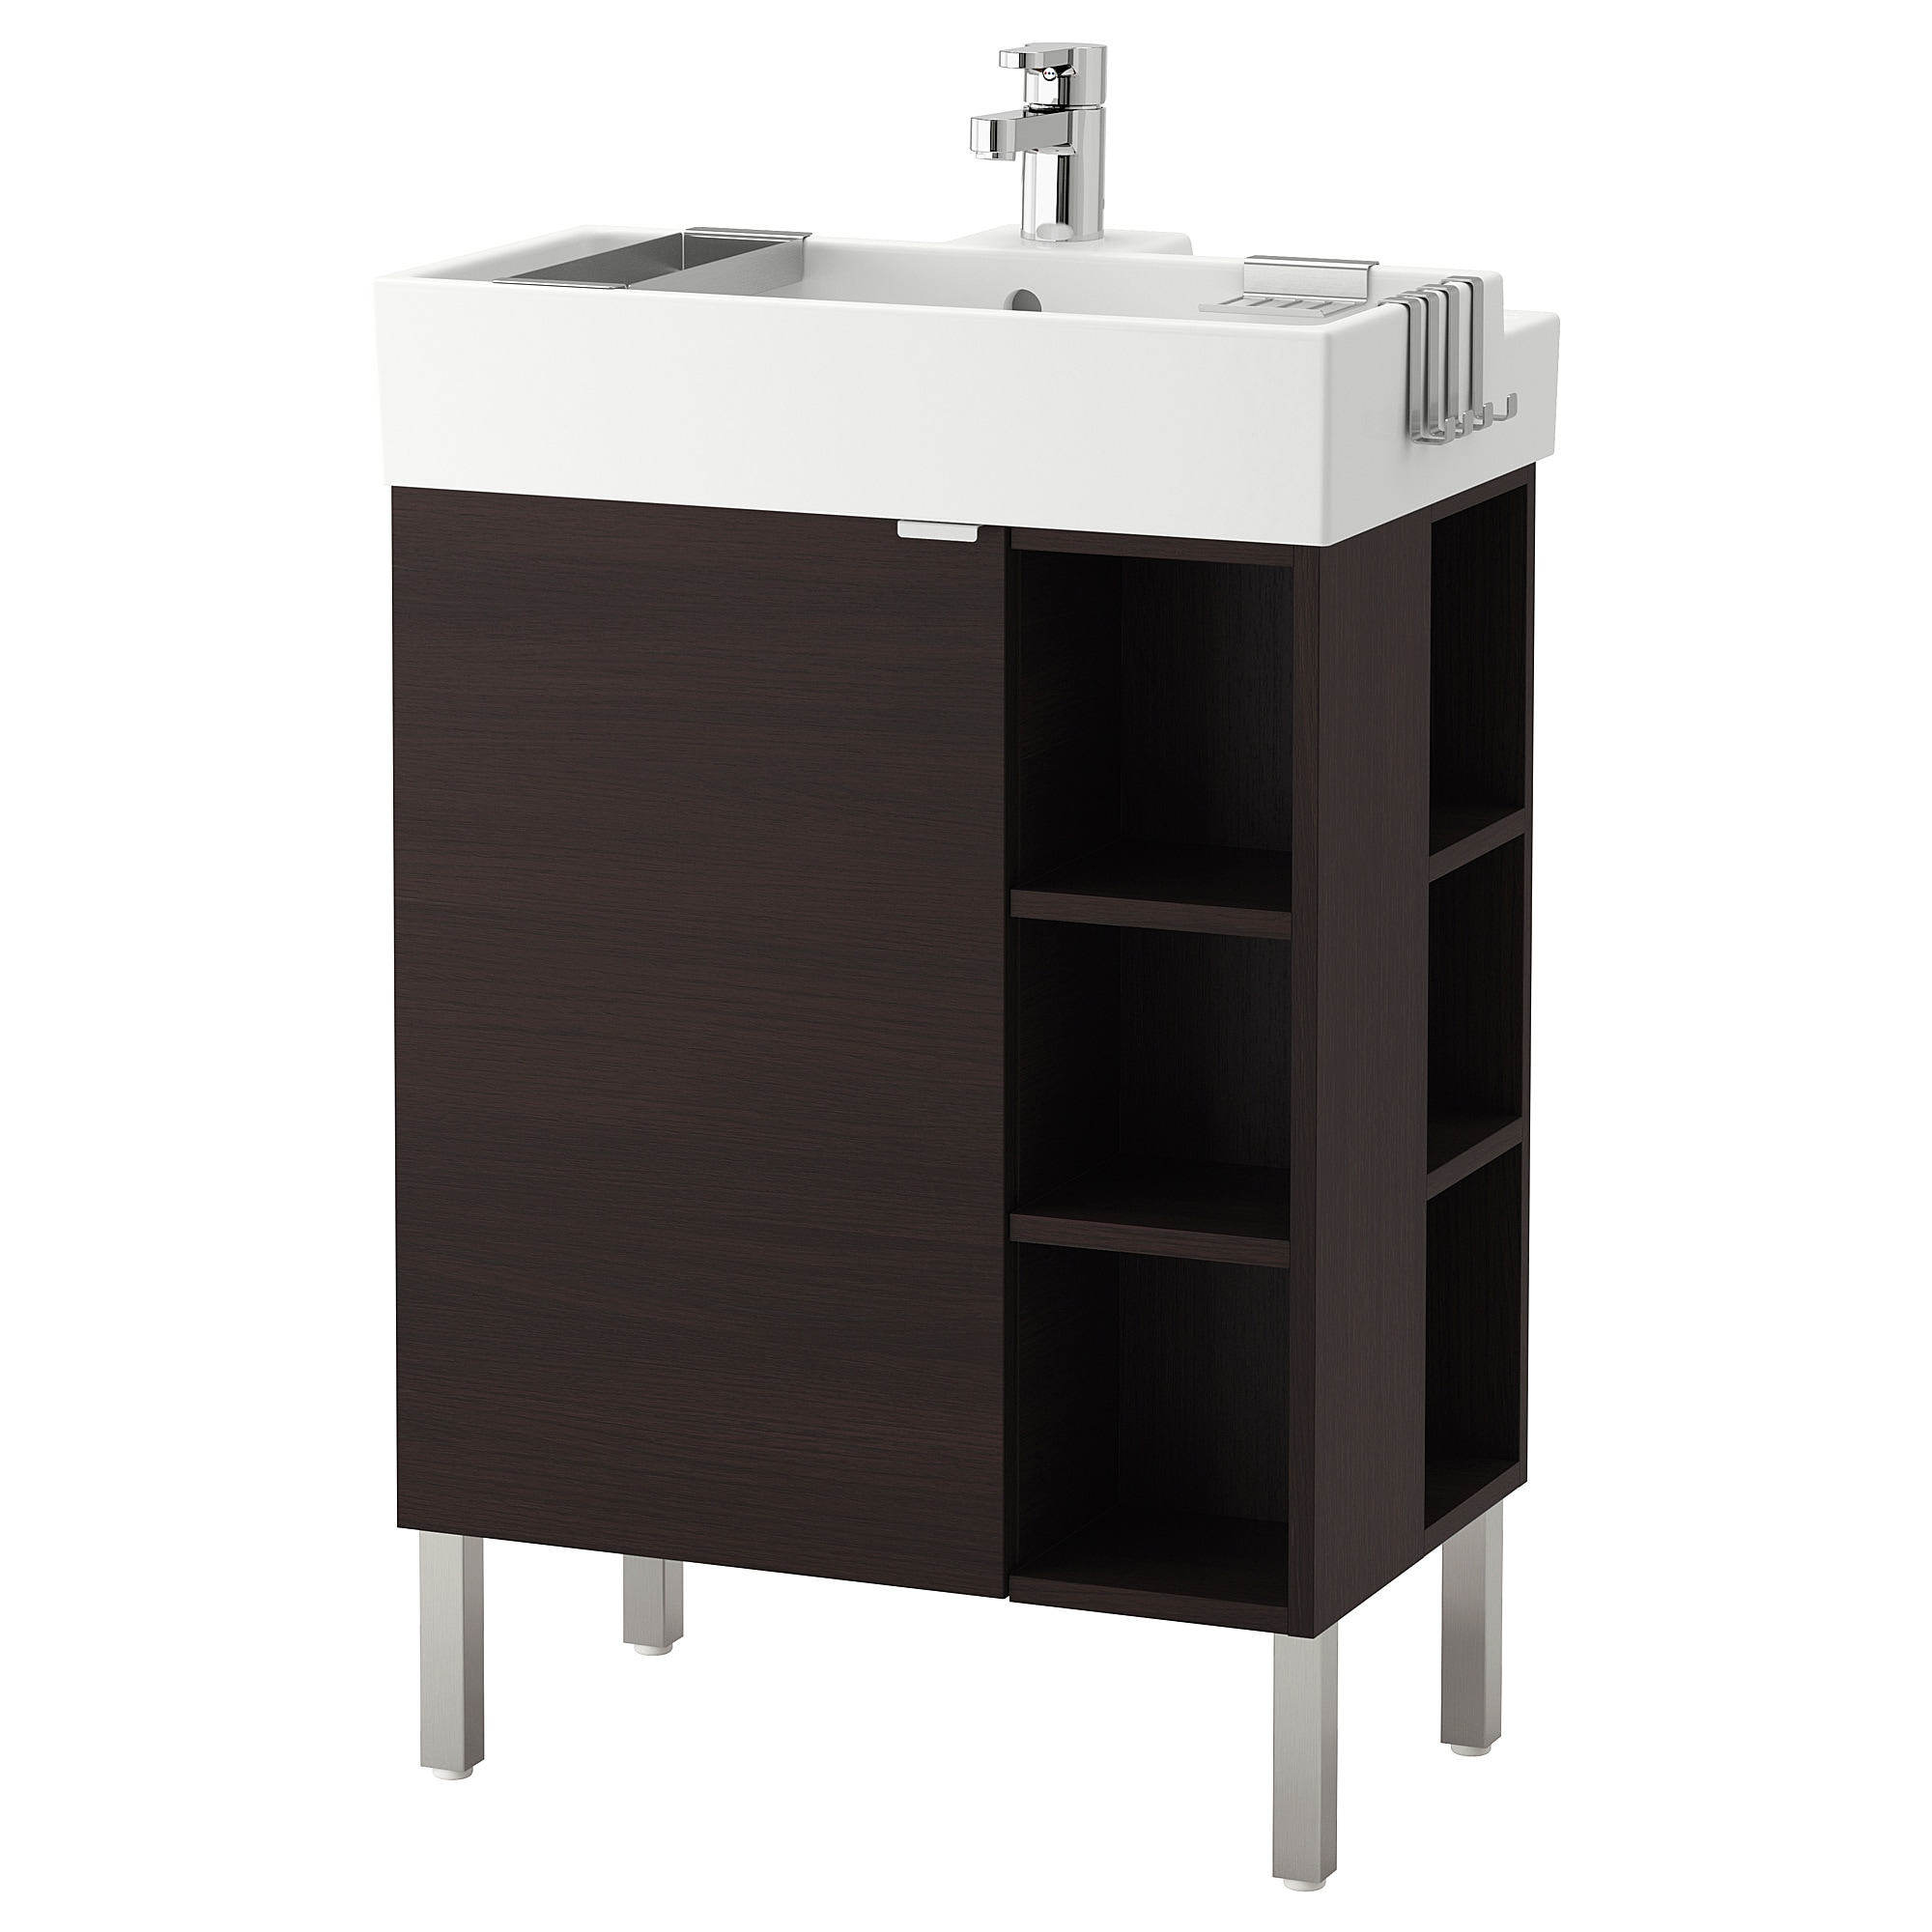 Bathroom Vanity Height Options Full Size Of Kitchen Roomupper Cabinet Height Options 12 Inch